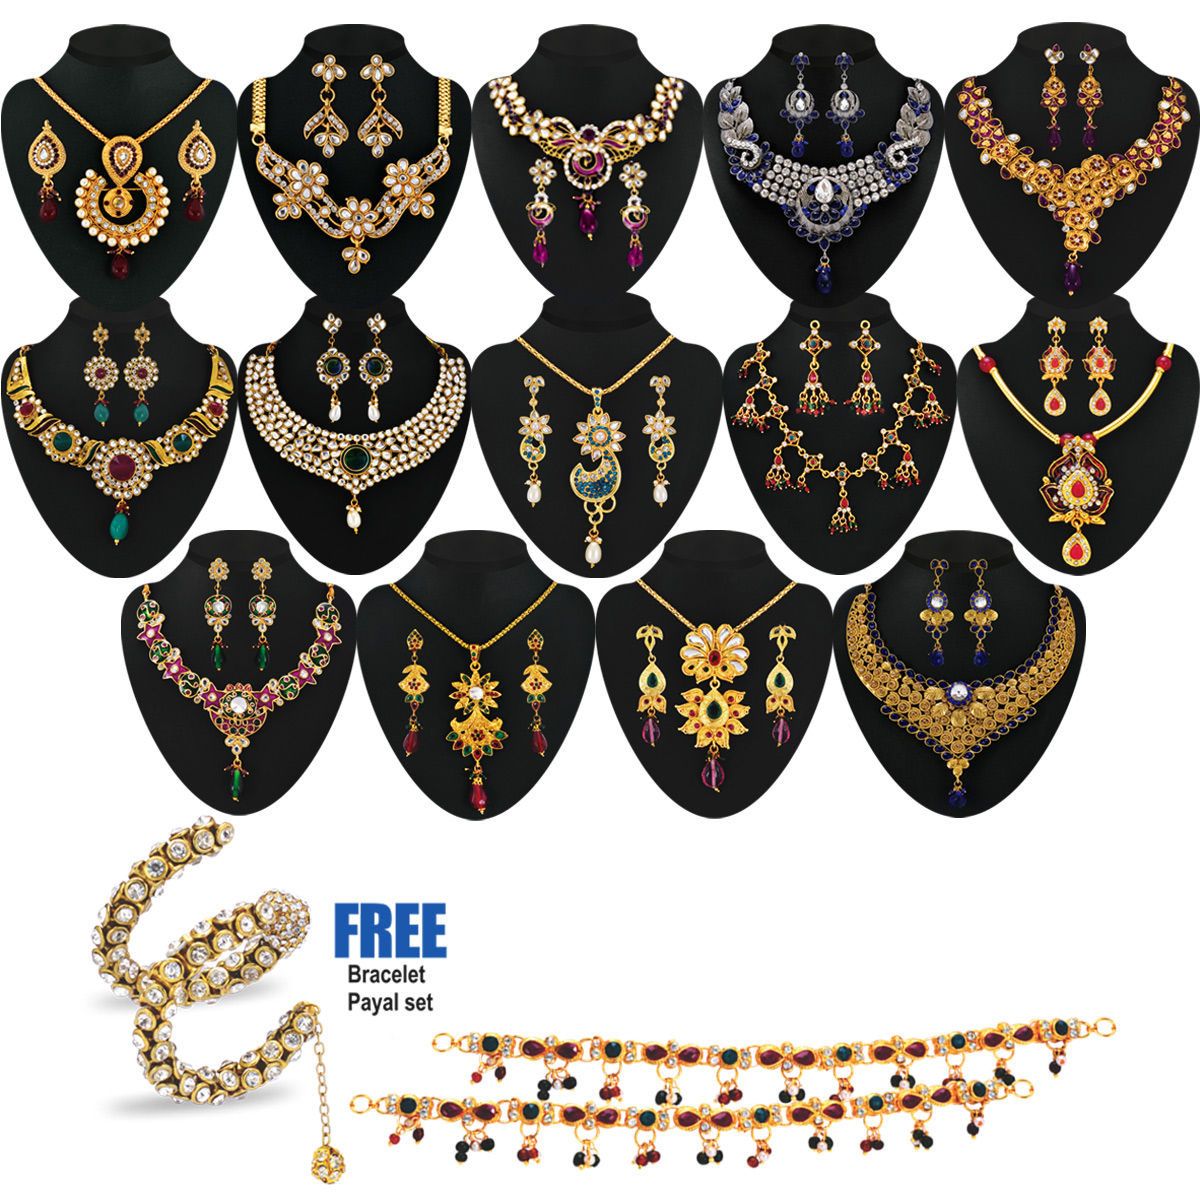 Buy Anmol 1 Gram Gold Plated 14 Jewellery Set Online At